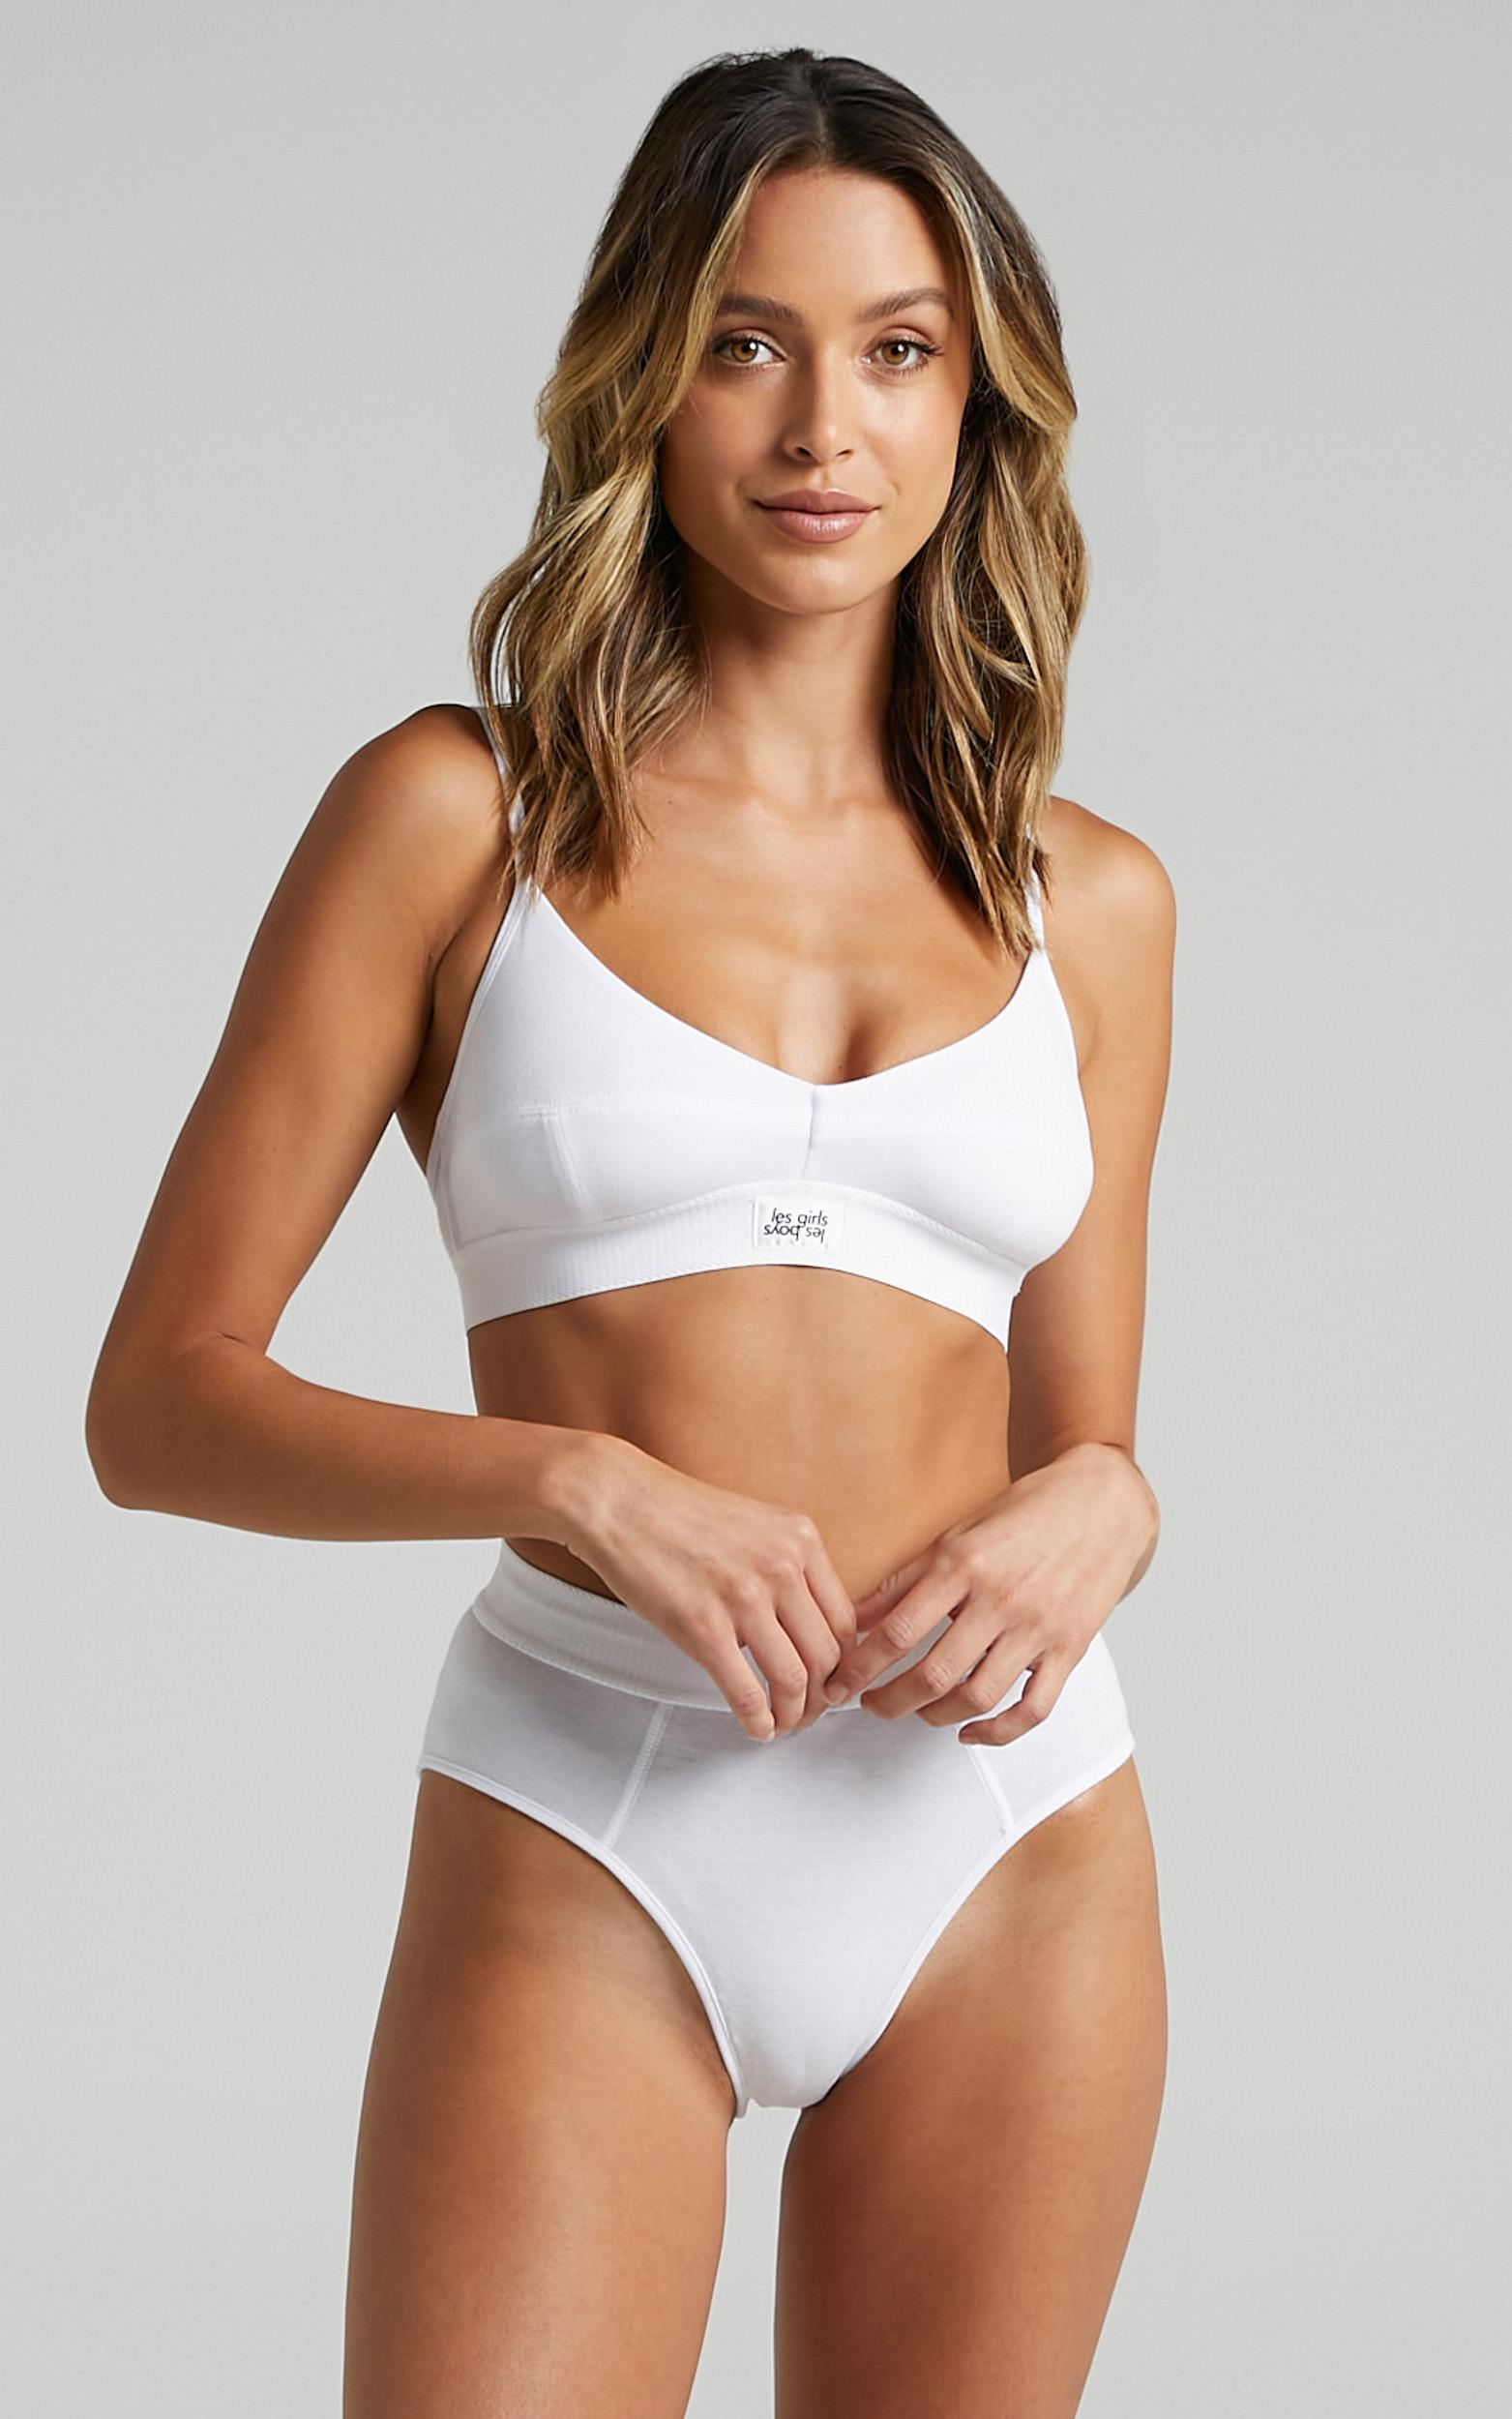 Les Girls Les Boys - Ultimate Comfort Soft Bra in White - XS, White, hi-res image number null